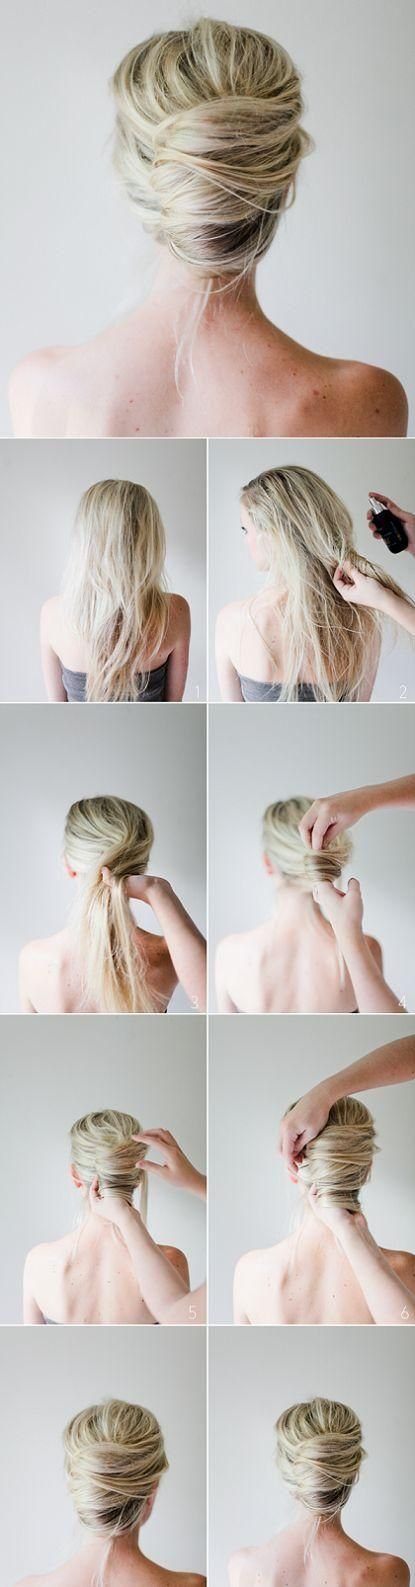 Messy French Twist ♥ Stylefruits Inspiration ♥